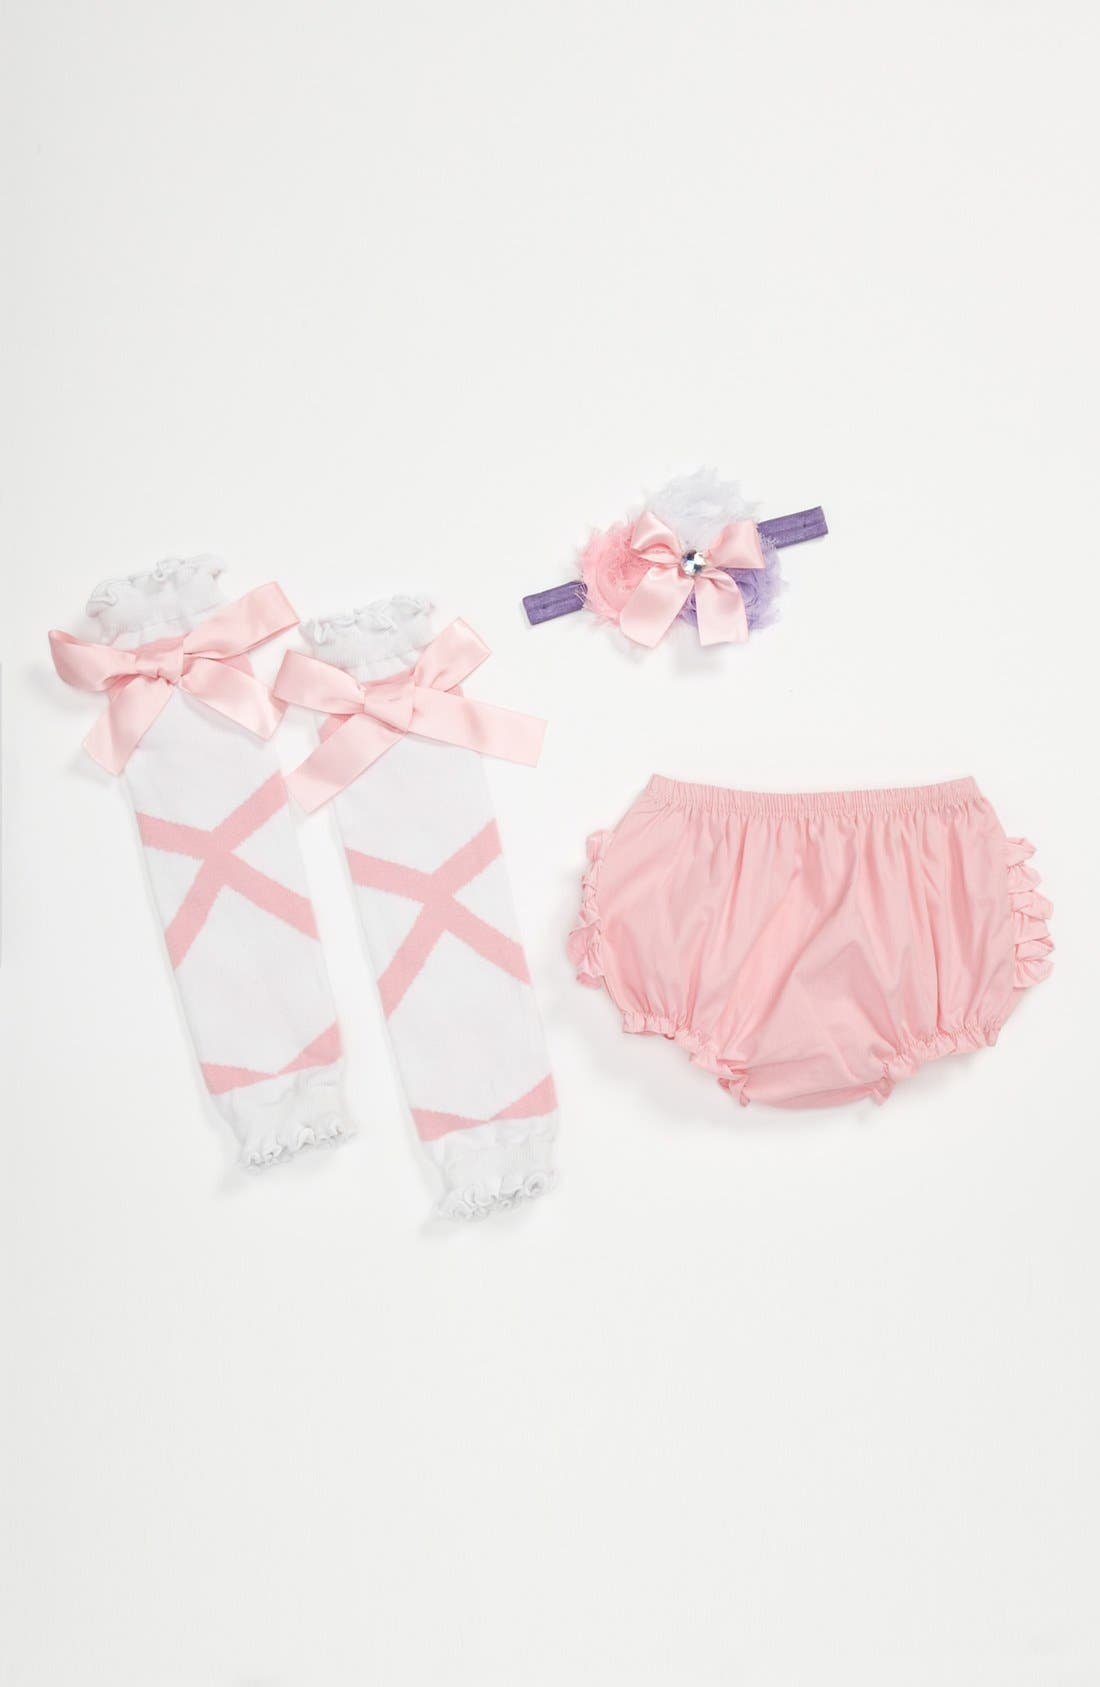 Alternate Image 1 Selected - RuffleButts 'Ballerina' Headband, Bloomers & Leg Warmers (Baby)